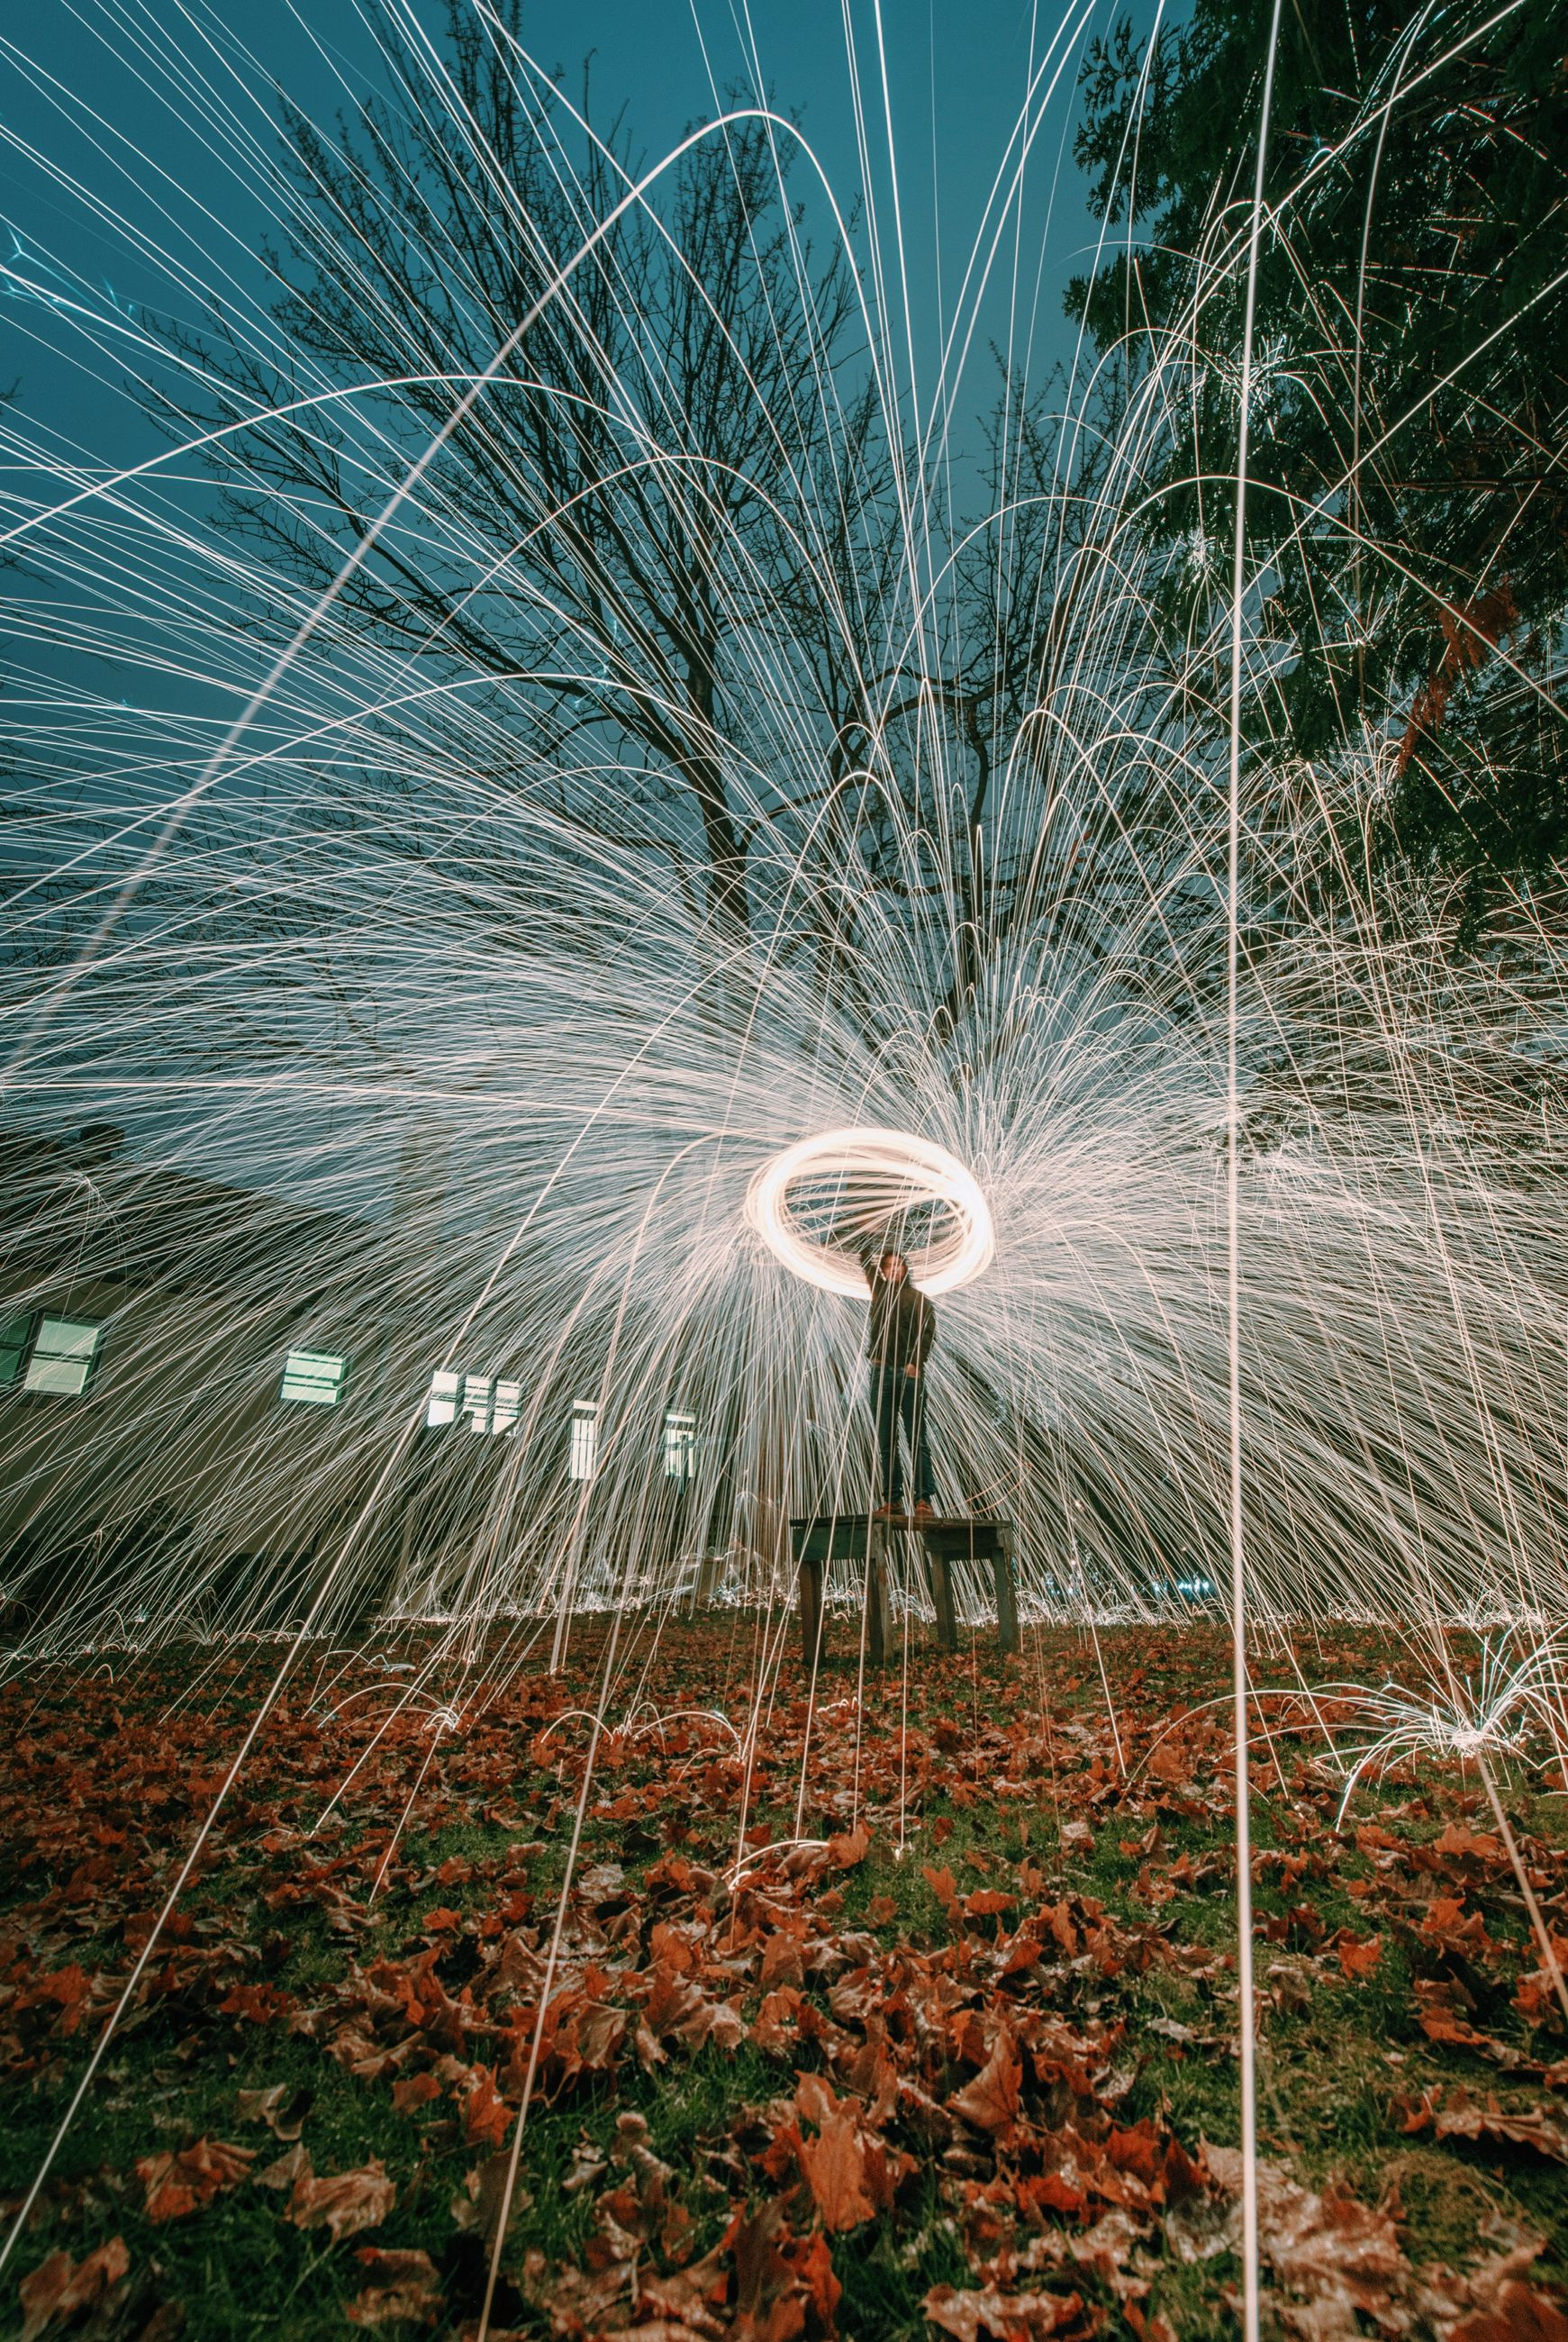 illuminated, night, lighting equipment, glowing, long exposure, nature, outdoors, water, motion, no people, low angle view, electricity, spider web, close-up, sky, light - natural phenomenon, beauty in nature, plant, pattern, celebration